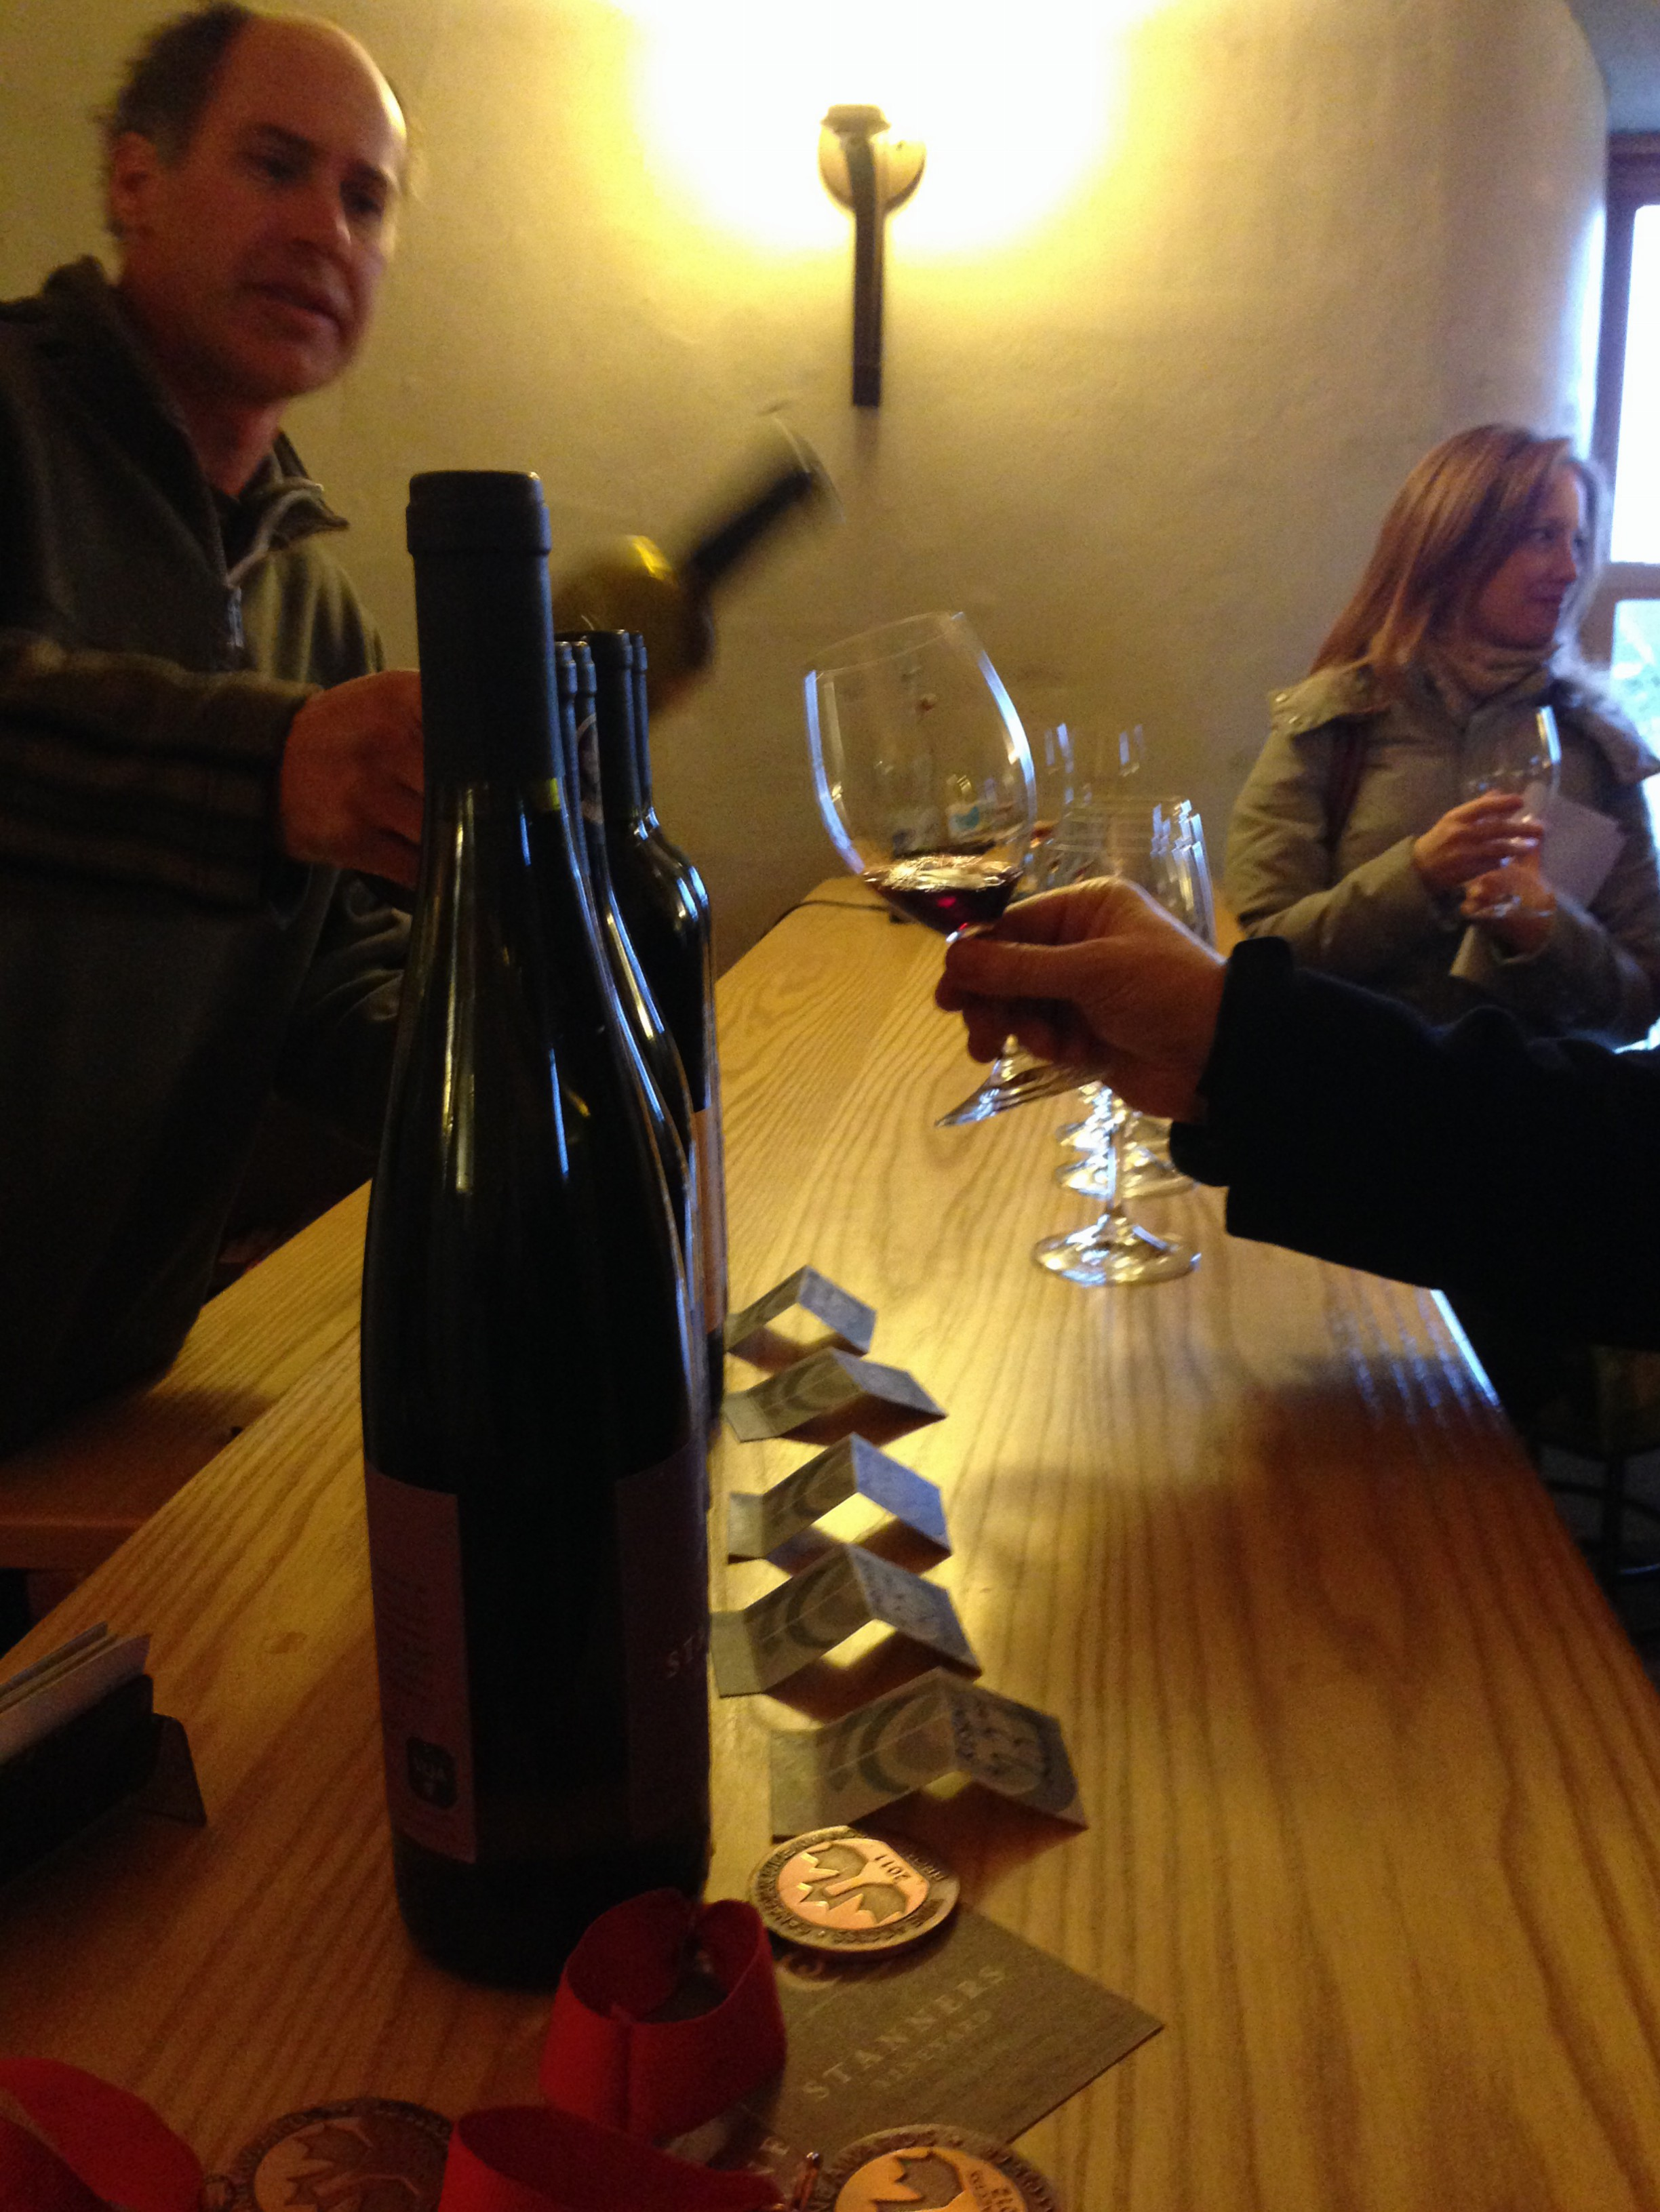 Getting a taste at Stanners Vineyards